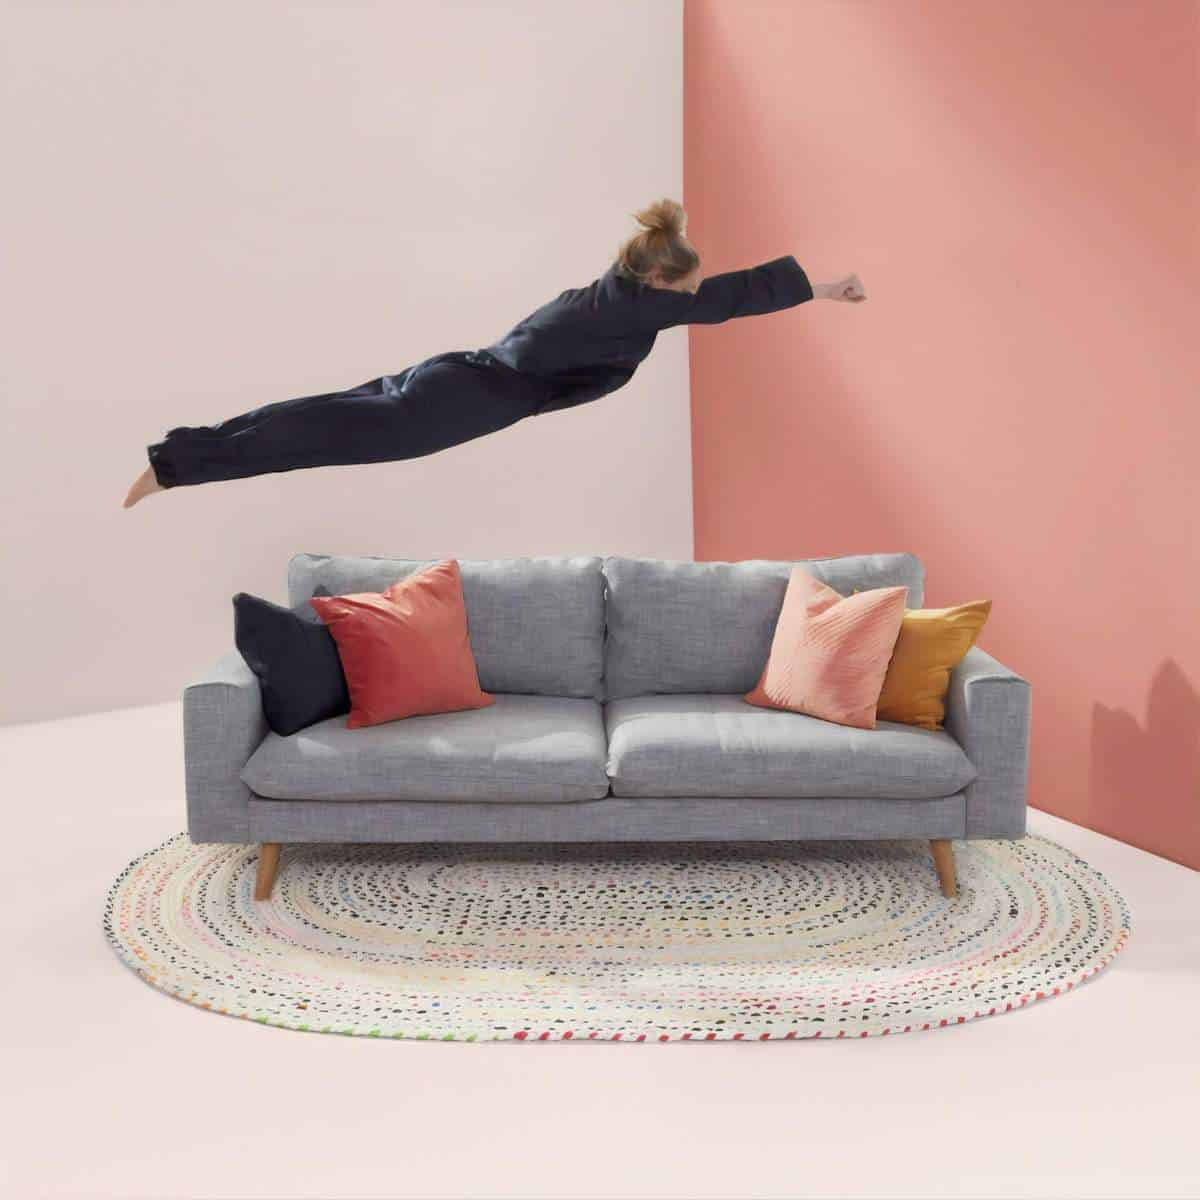 How to Travel at Home - woman 'fyinf' above a grey 2 seater couch